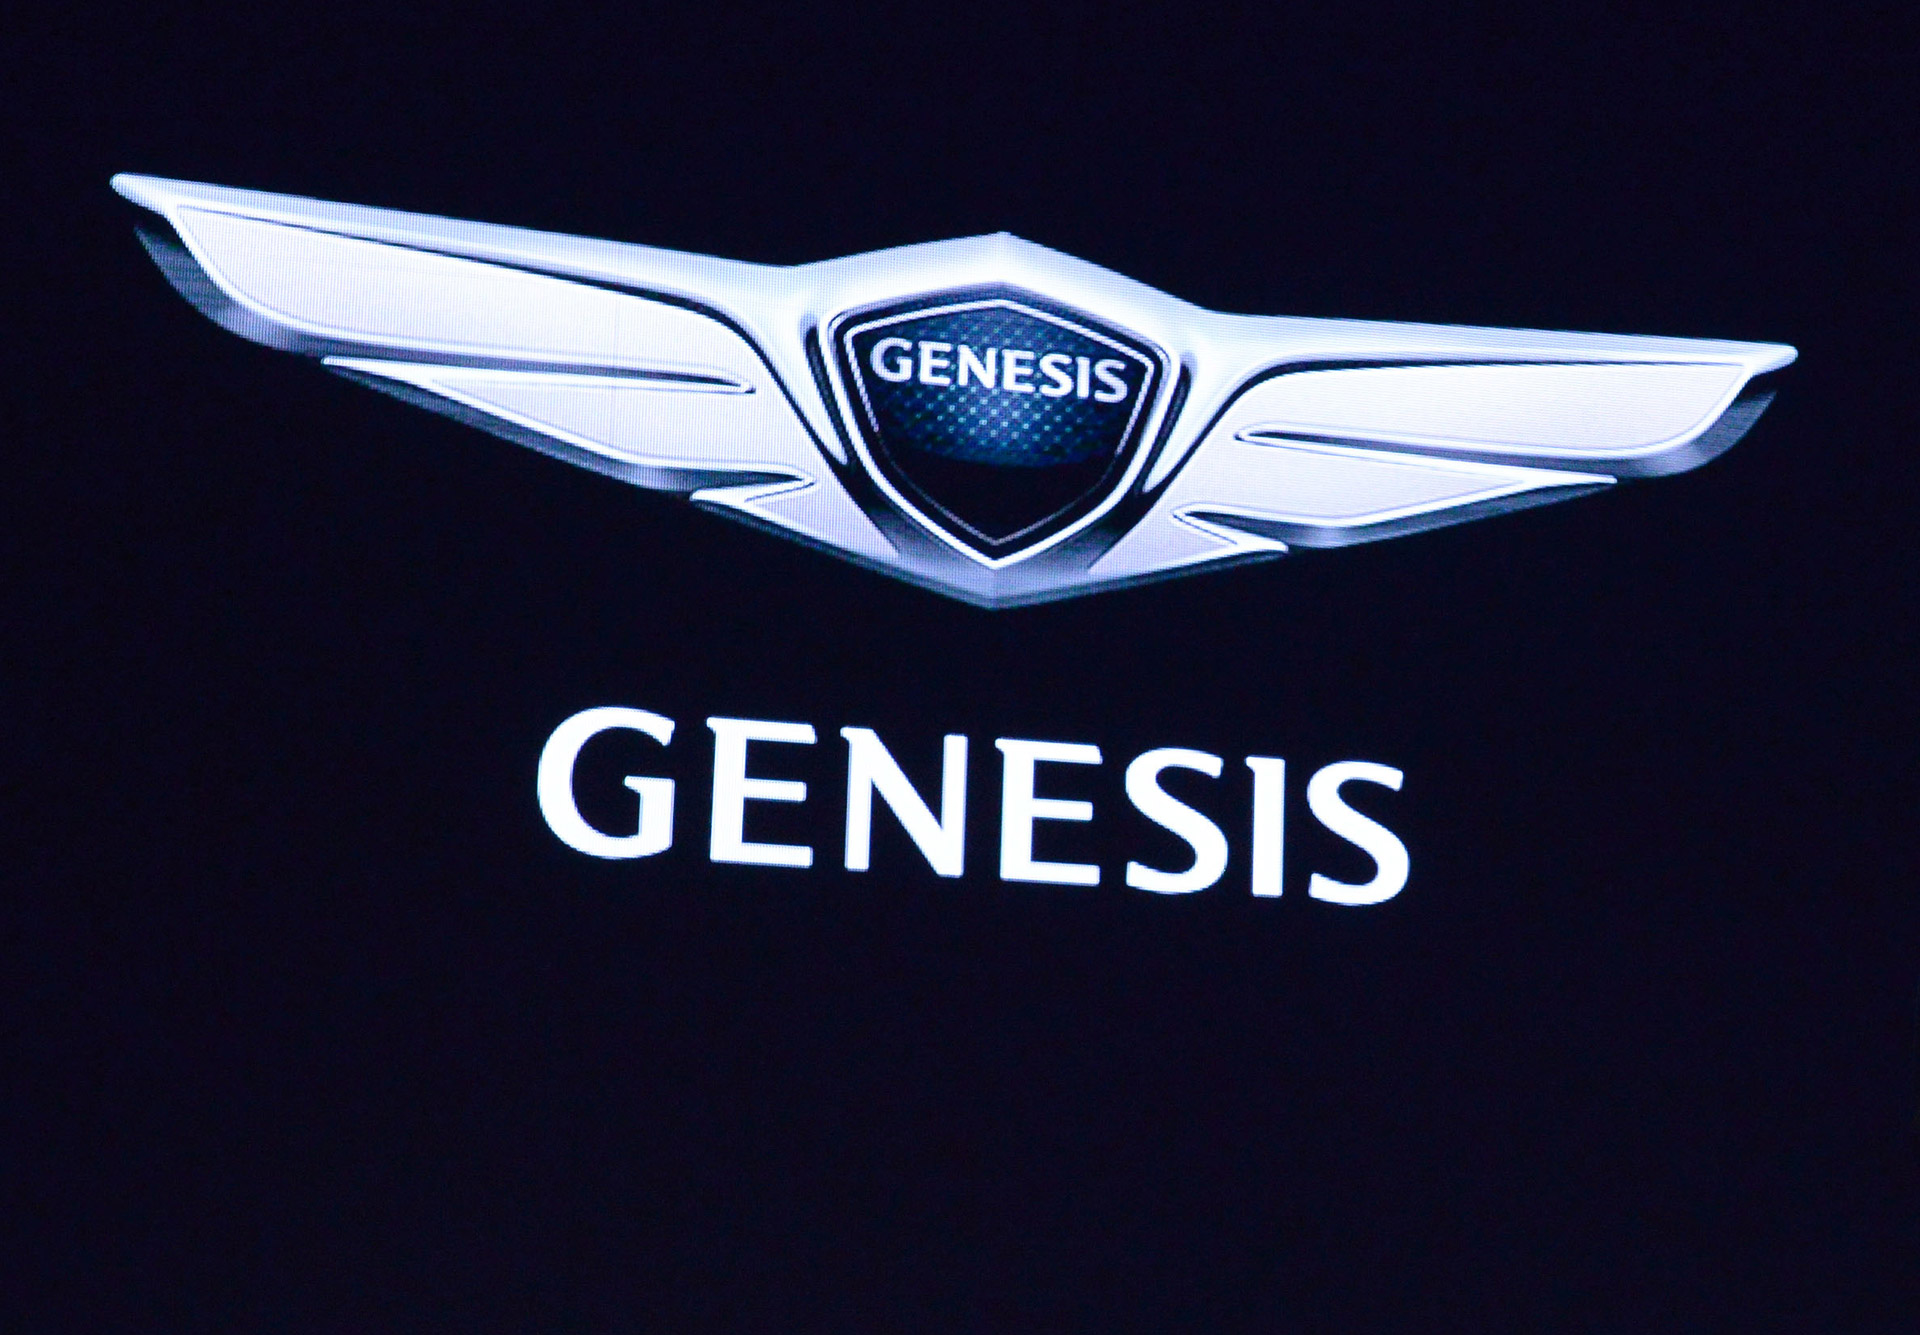 Genesis Car Logo Top Upcoming Cars 2020